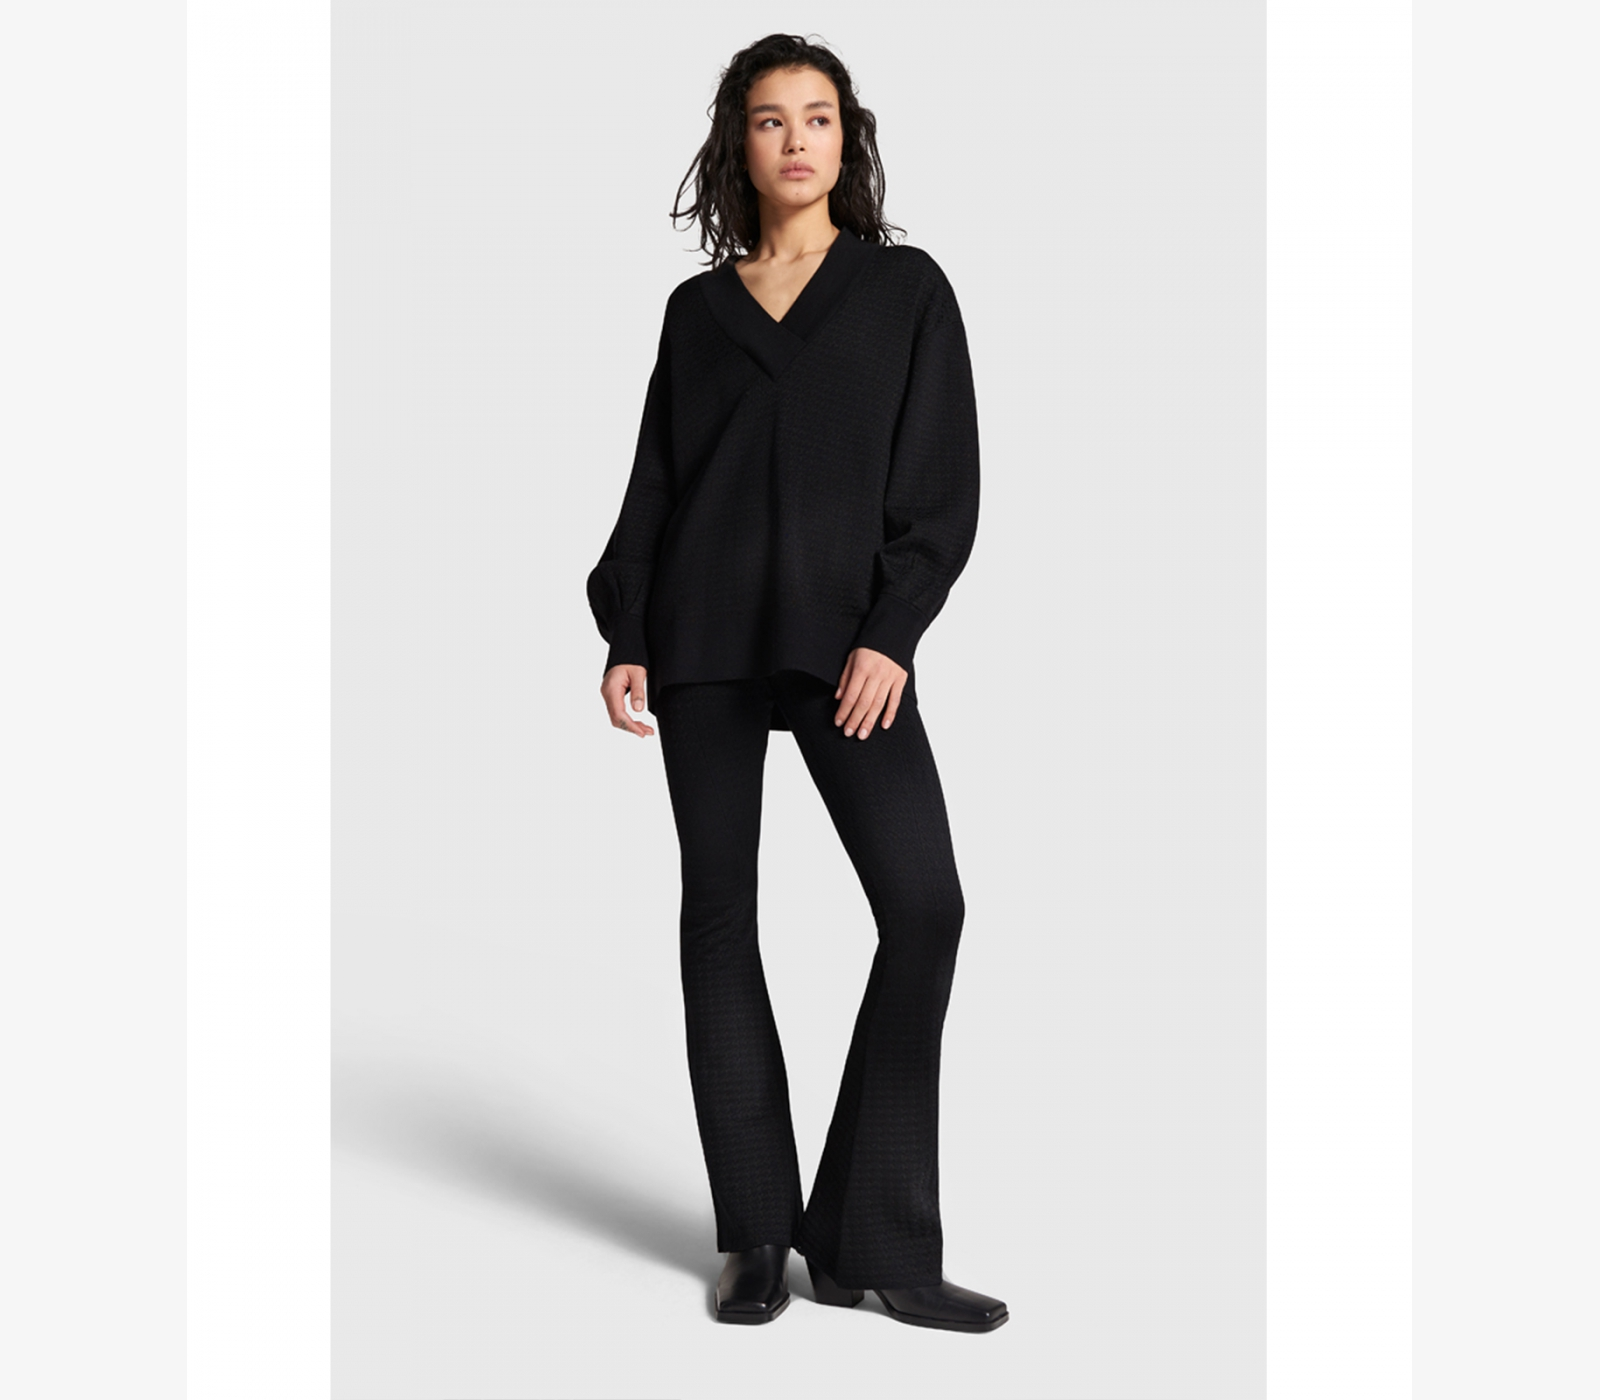 ALIX ladies knitted flared pants – black